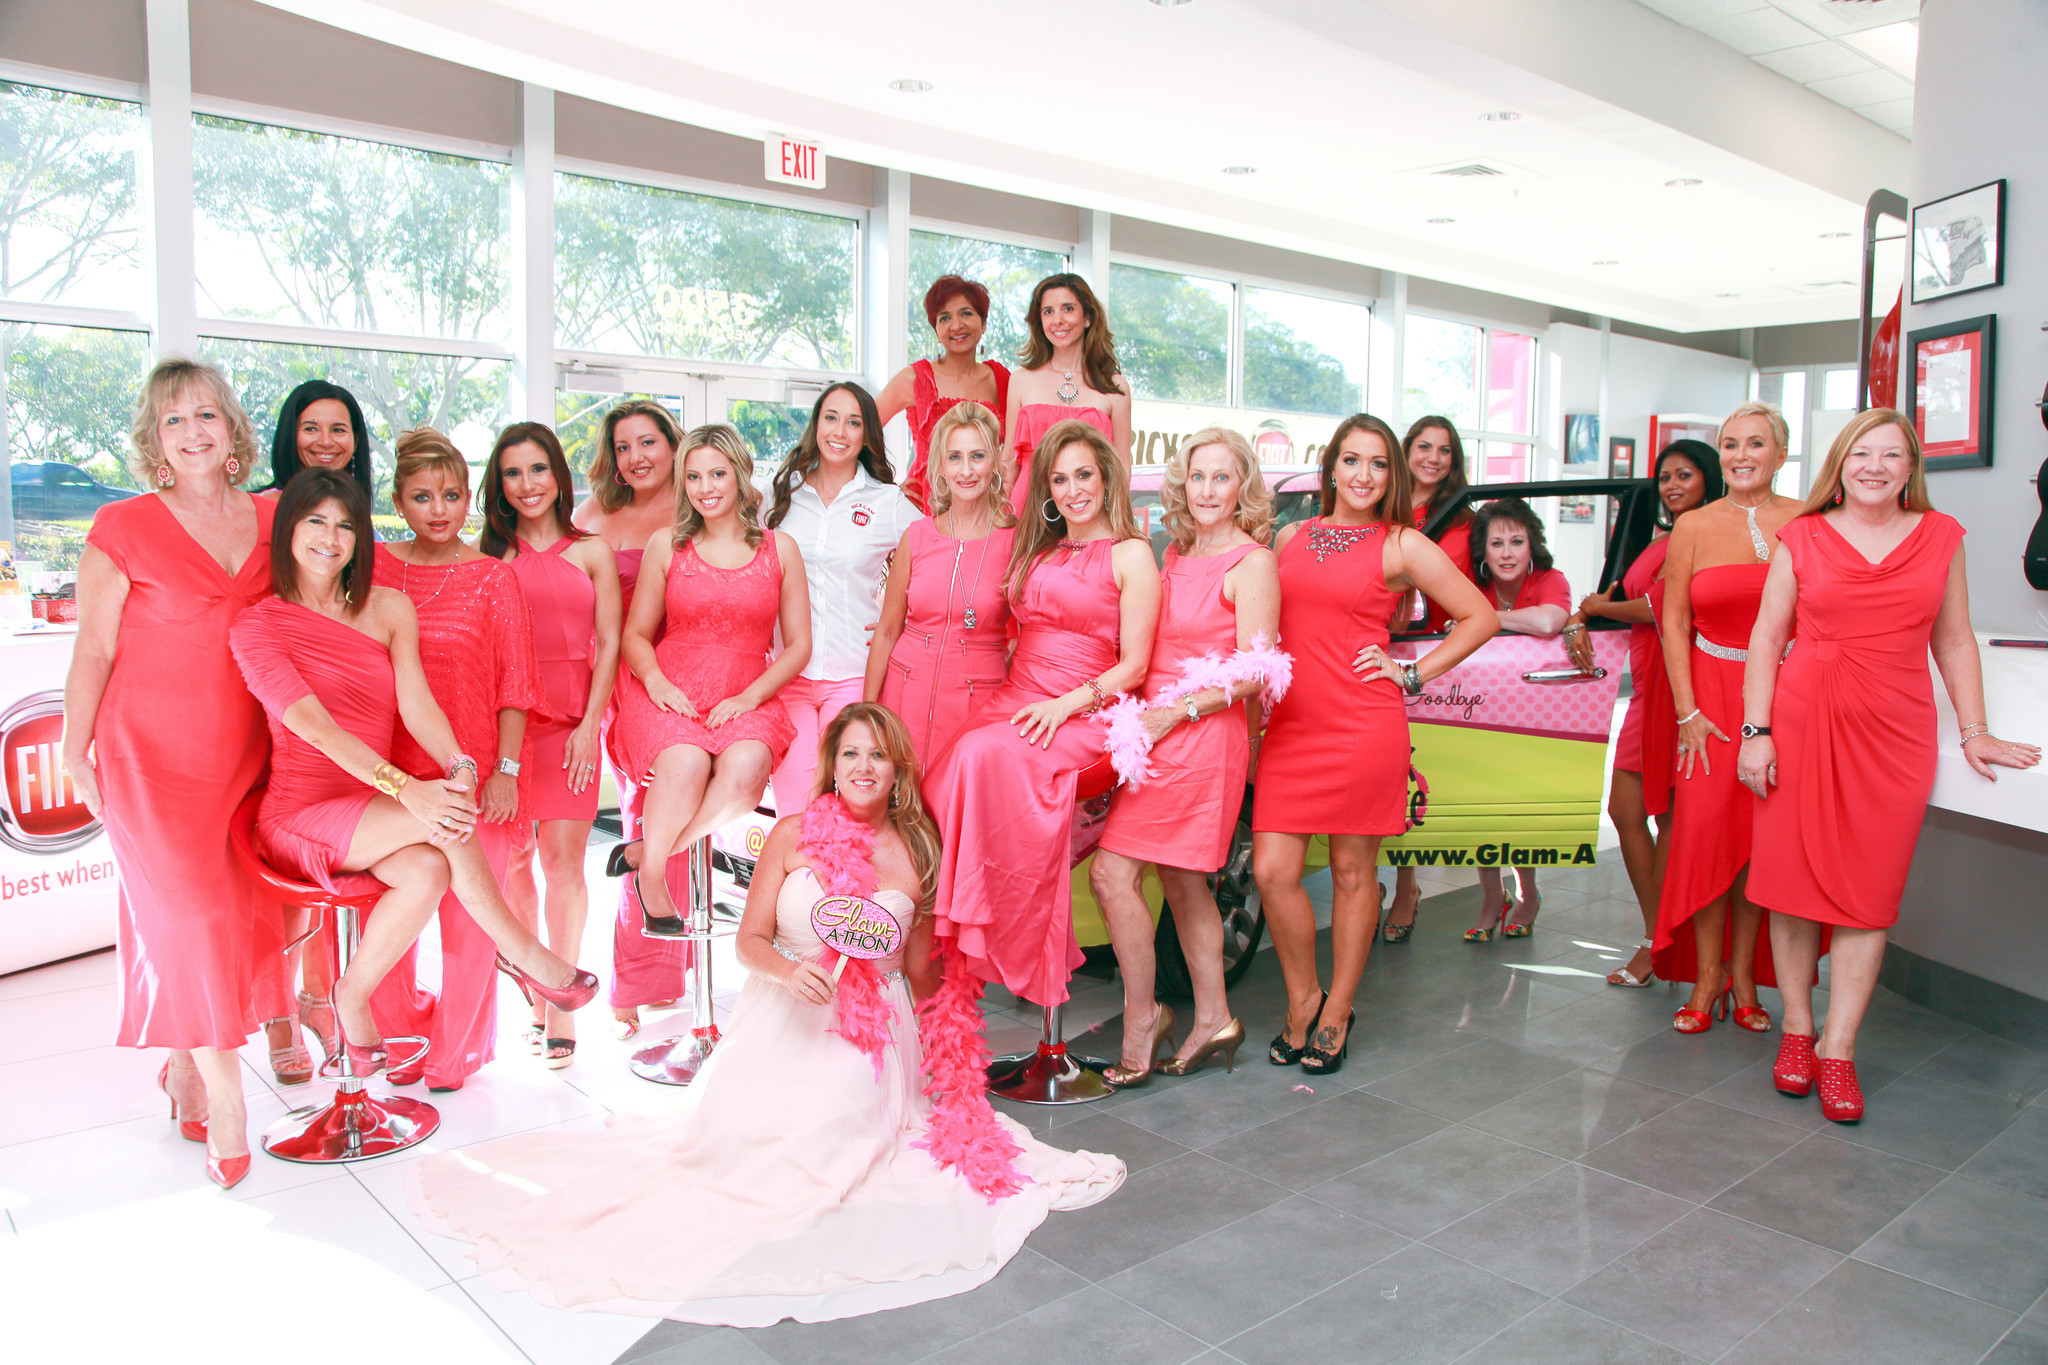 Society Scene photos - The ladies of Glam-A-Thon